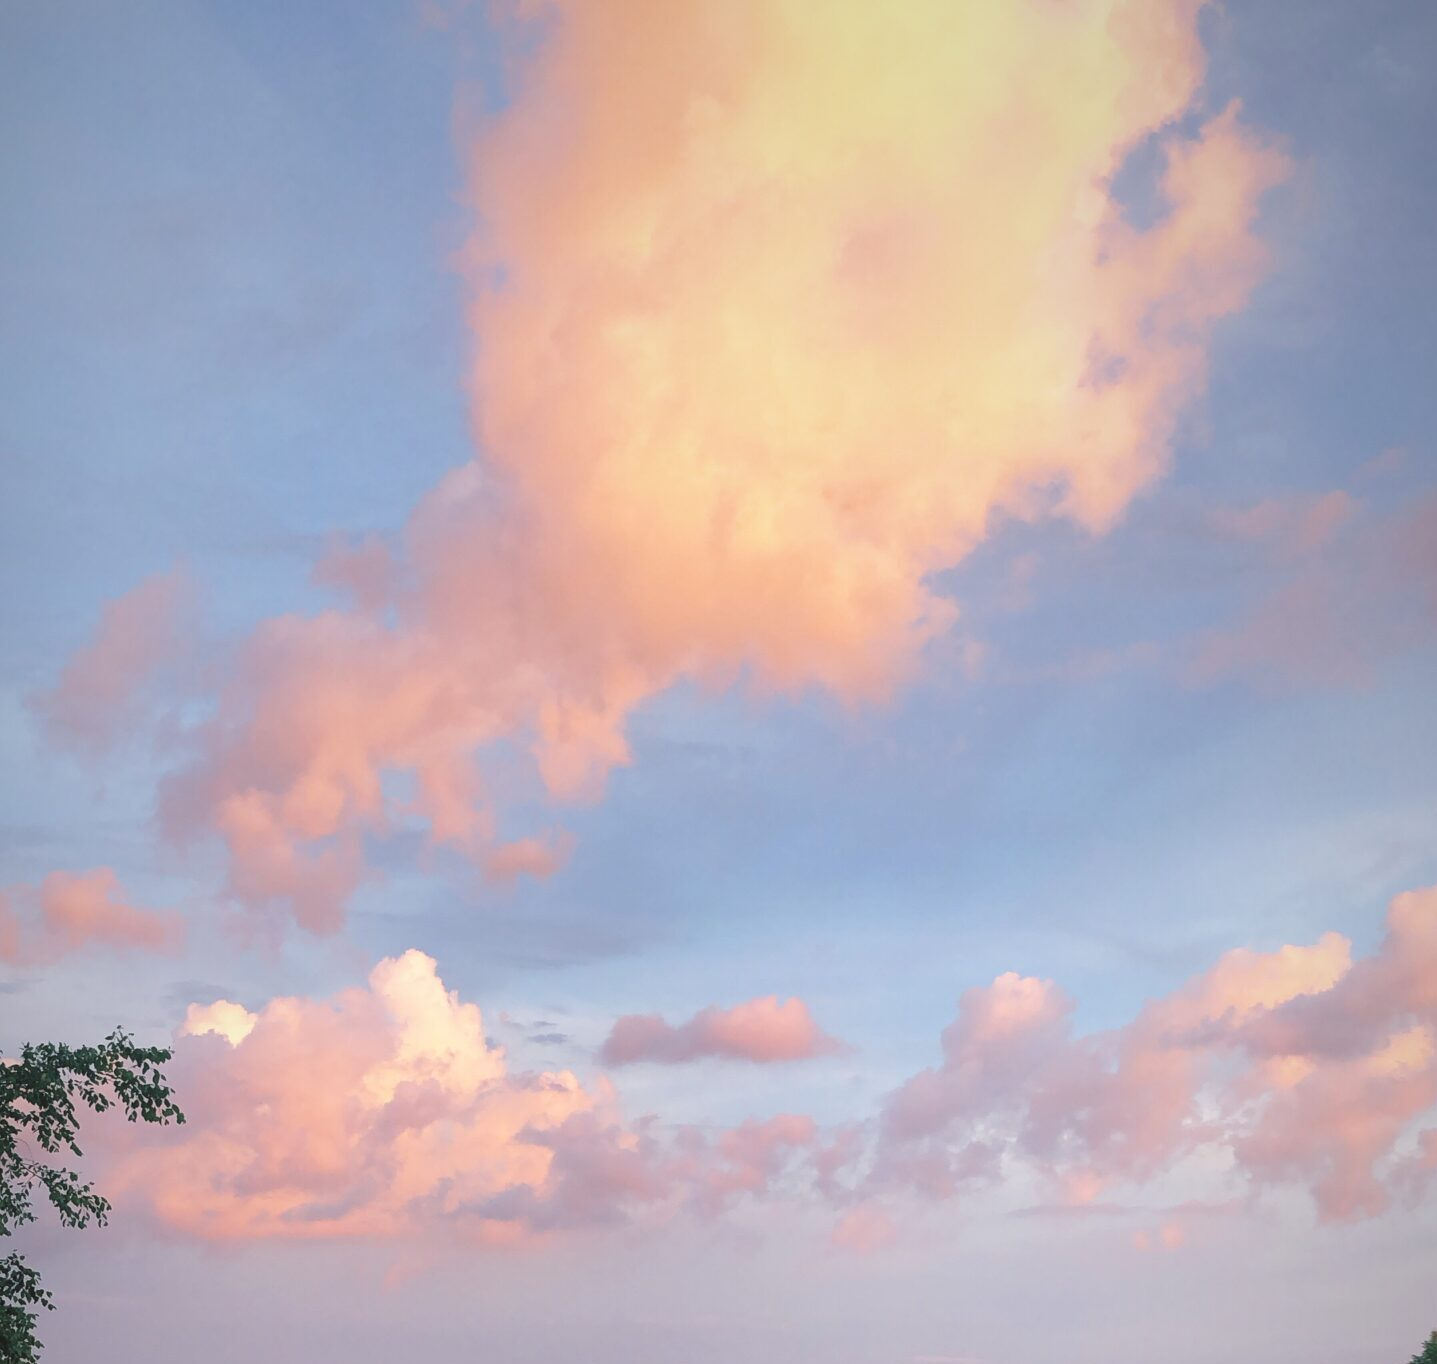 Blue sky with pink clouds